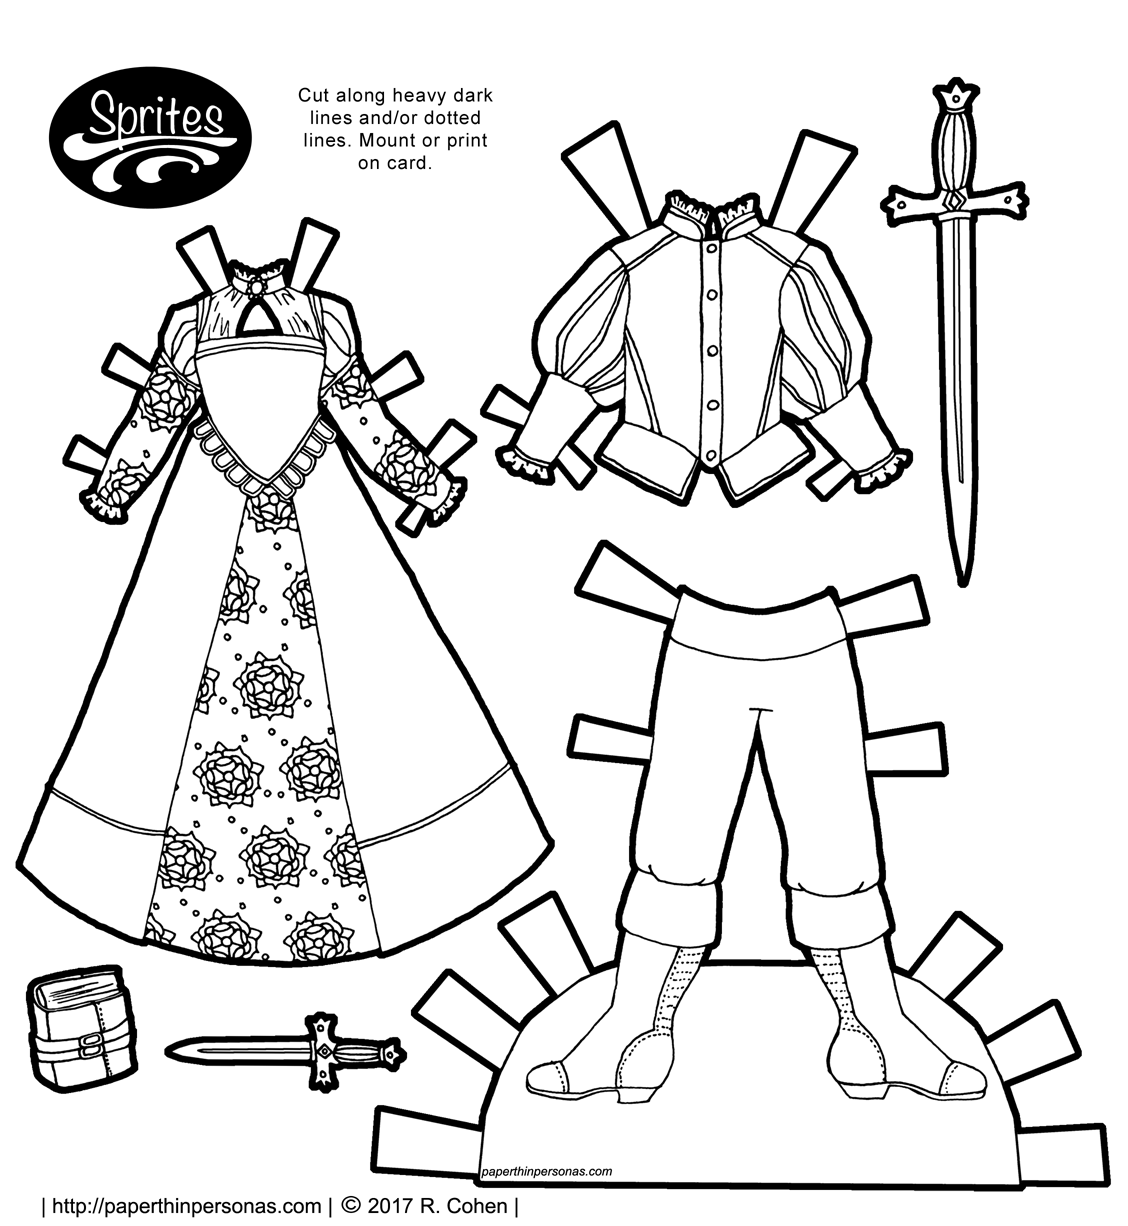 A pair of fantasy paper doll outfits based on Tudor Era dress to color and play with. Free to print and color from paperthinpersonas.com.